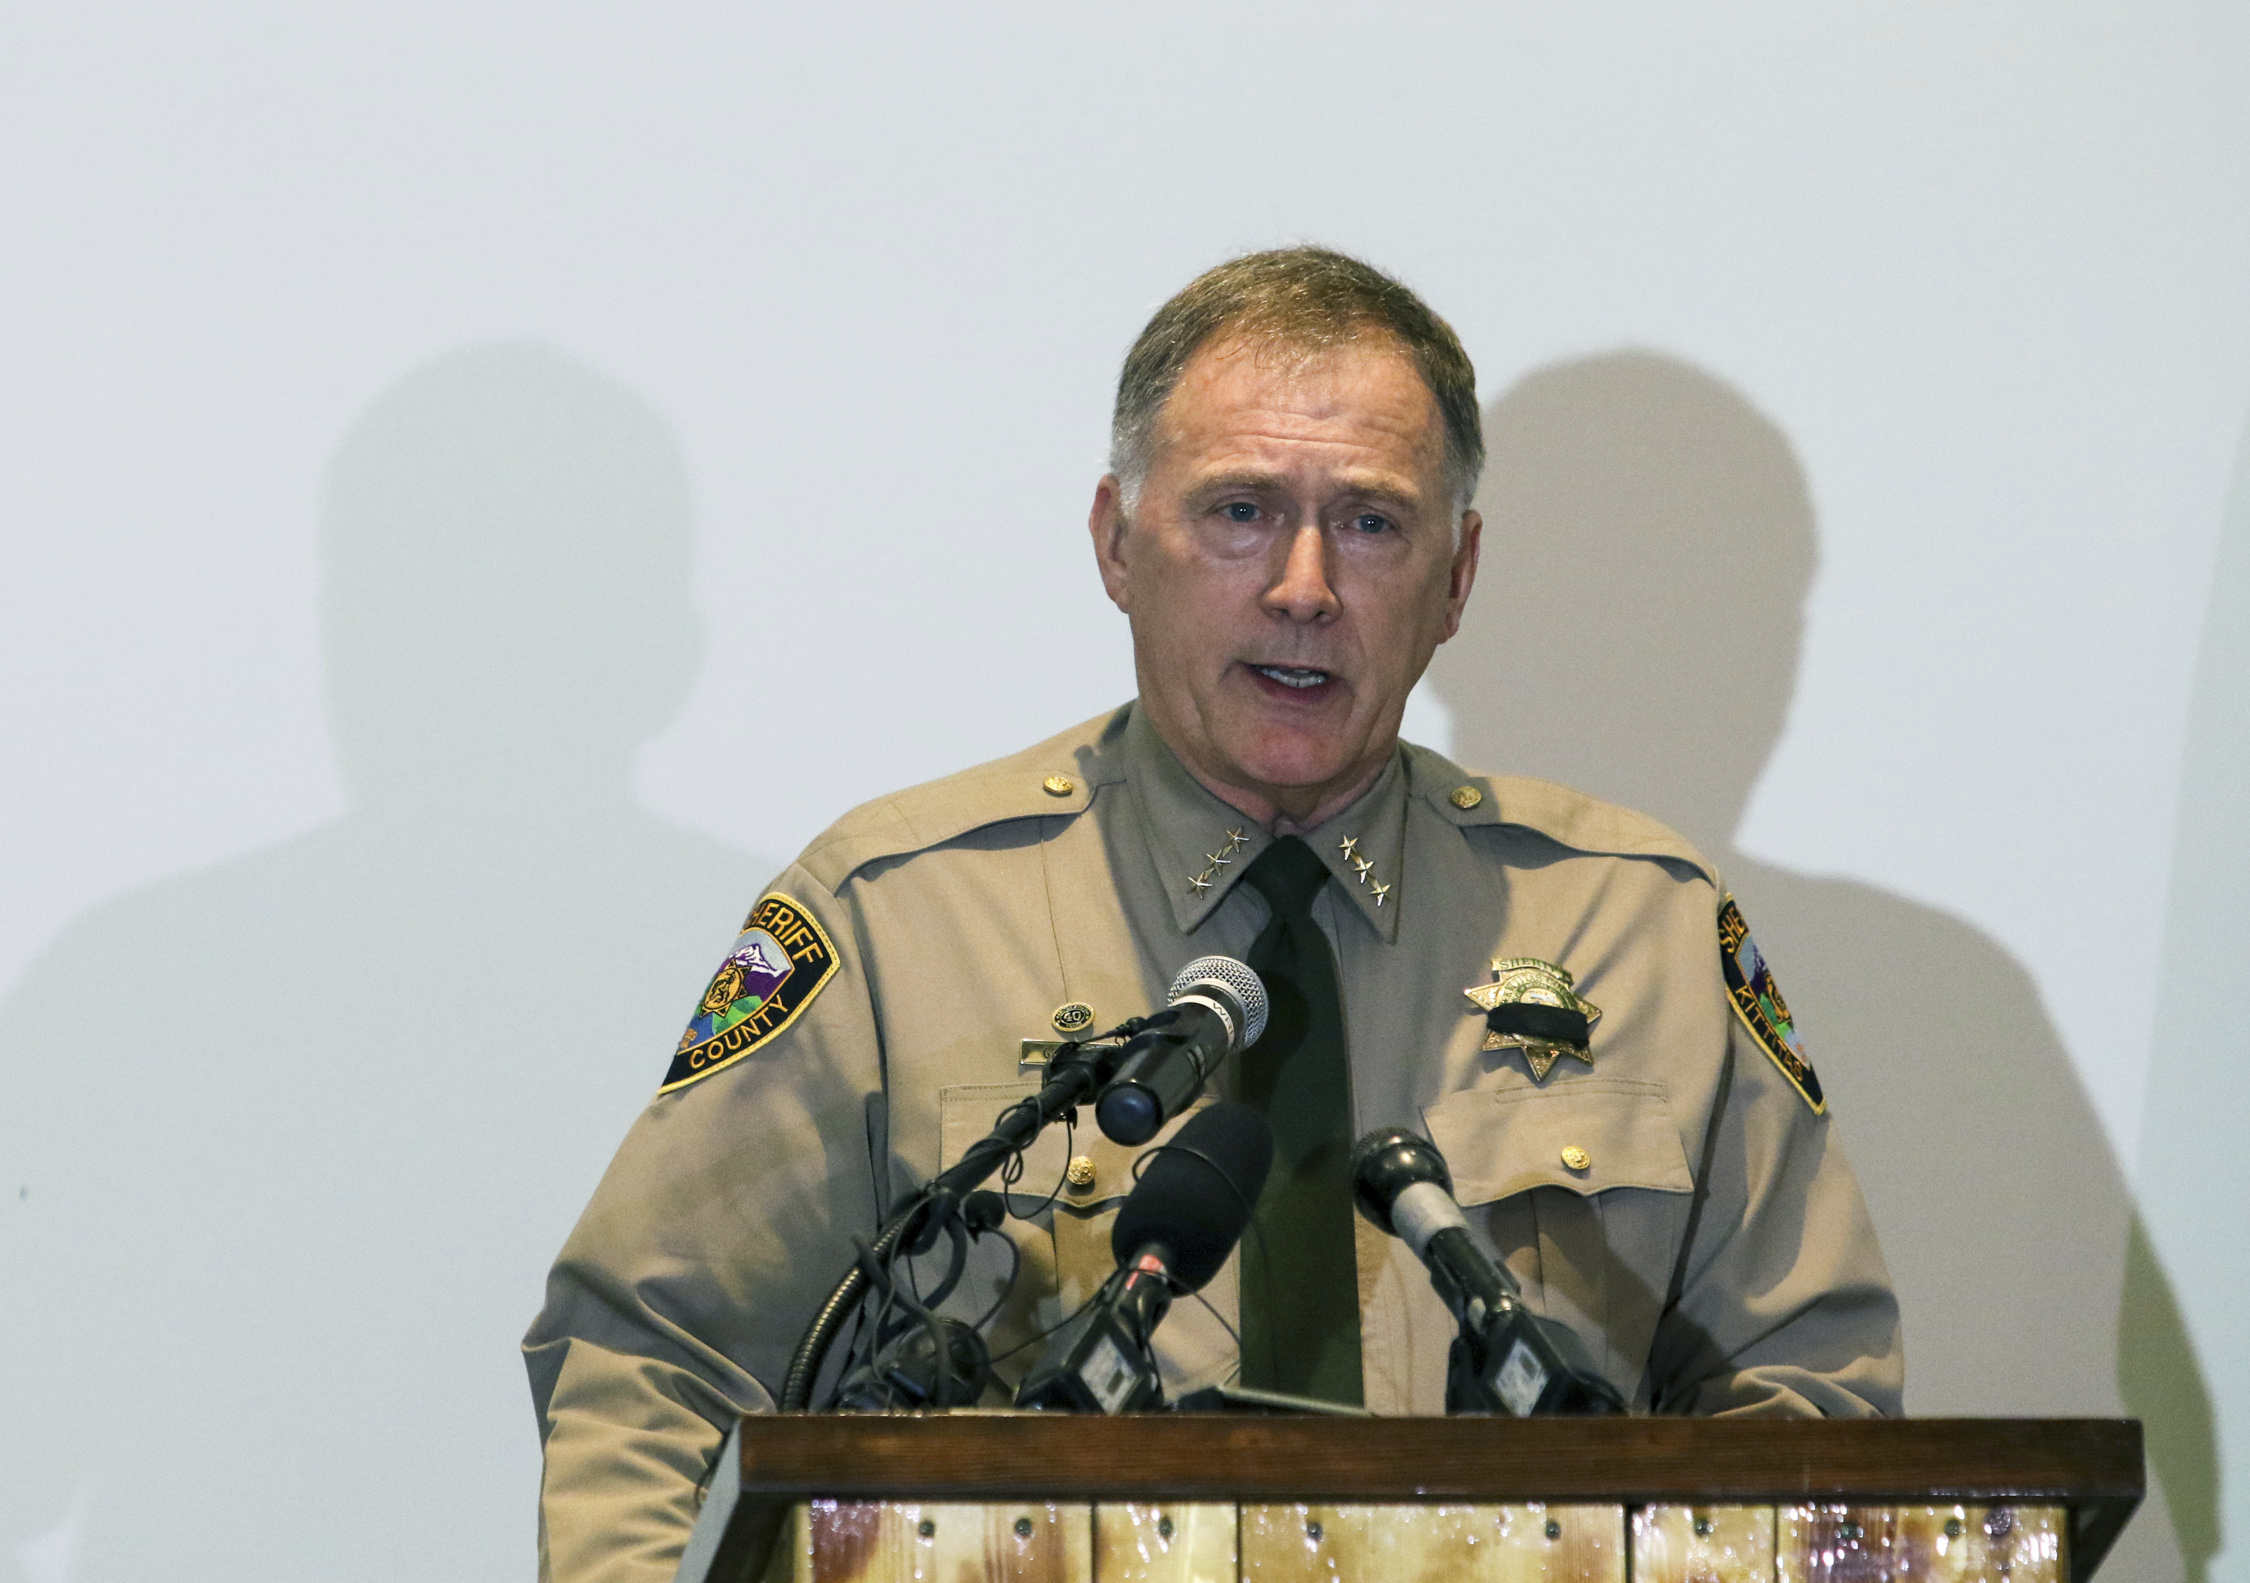 Kittitas County Sheriff Gene Dana speaks at a news conference, Wednesday, March 20, 2019, in Ellensburg, Wash. about the death of Deputy Ryan Thompson, who was killed Tuesday evening when he and a Kittitas Police officer exchanged gunfire with a road-rage driving suspect in Kittitas, Wash. The driver of the vehicle was also shot and later died at a hospital. (Jake Green/The Daily Record via AP)